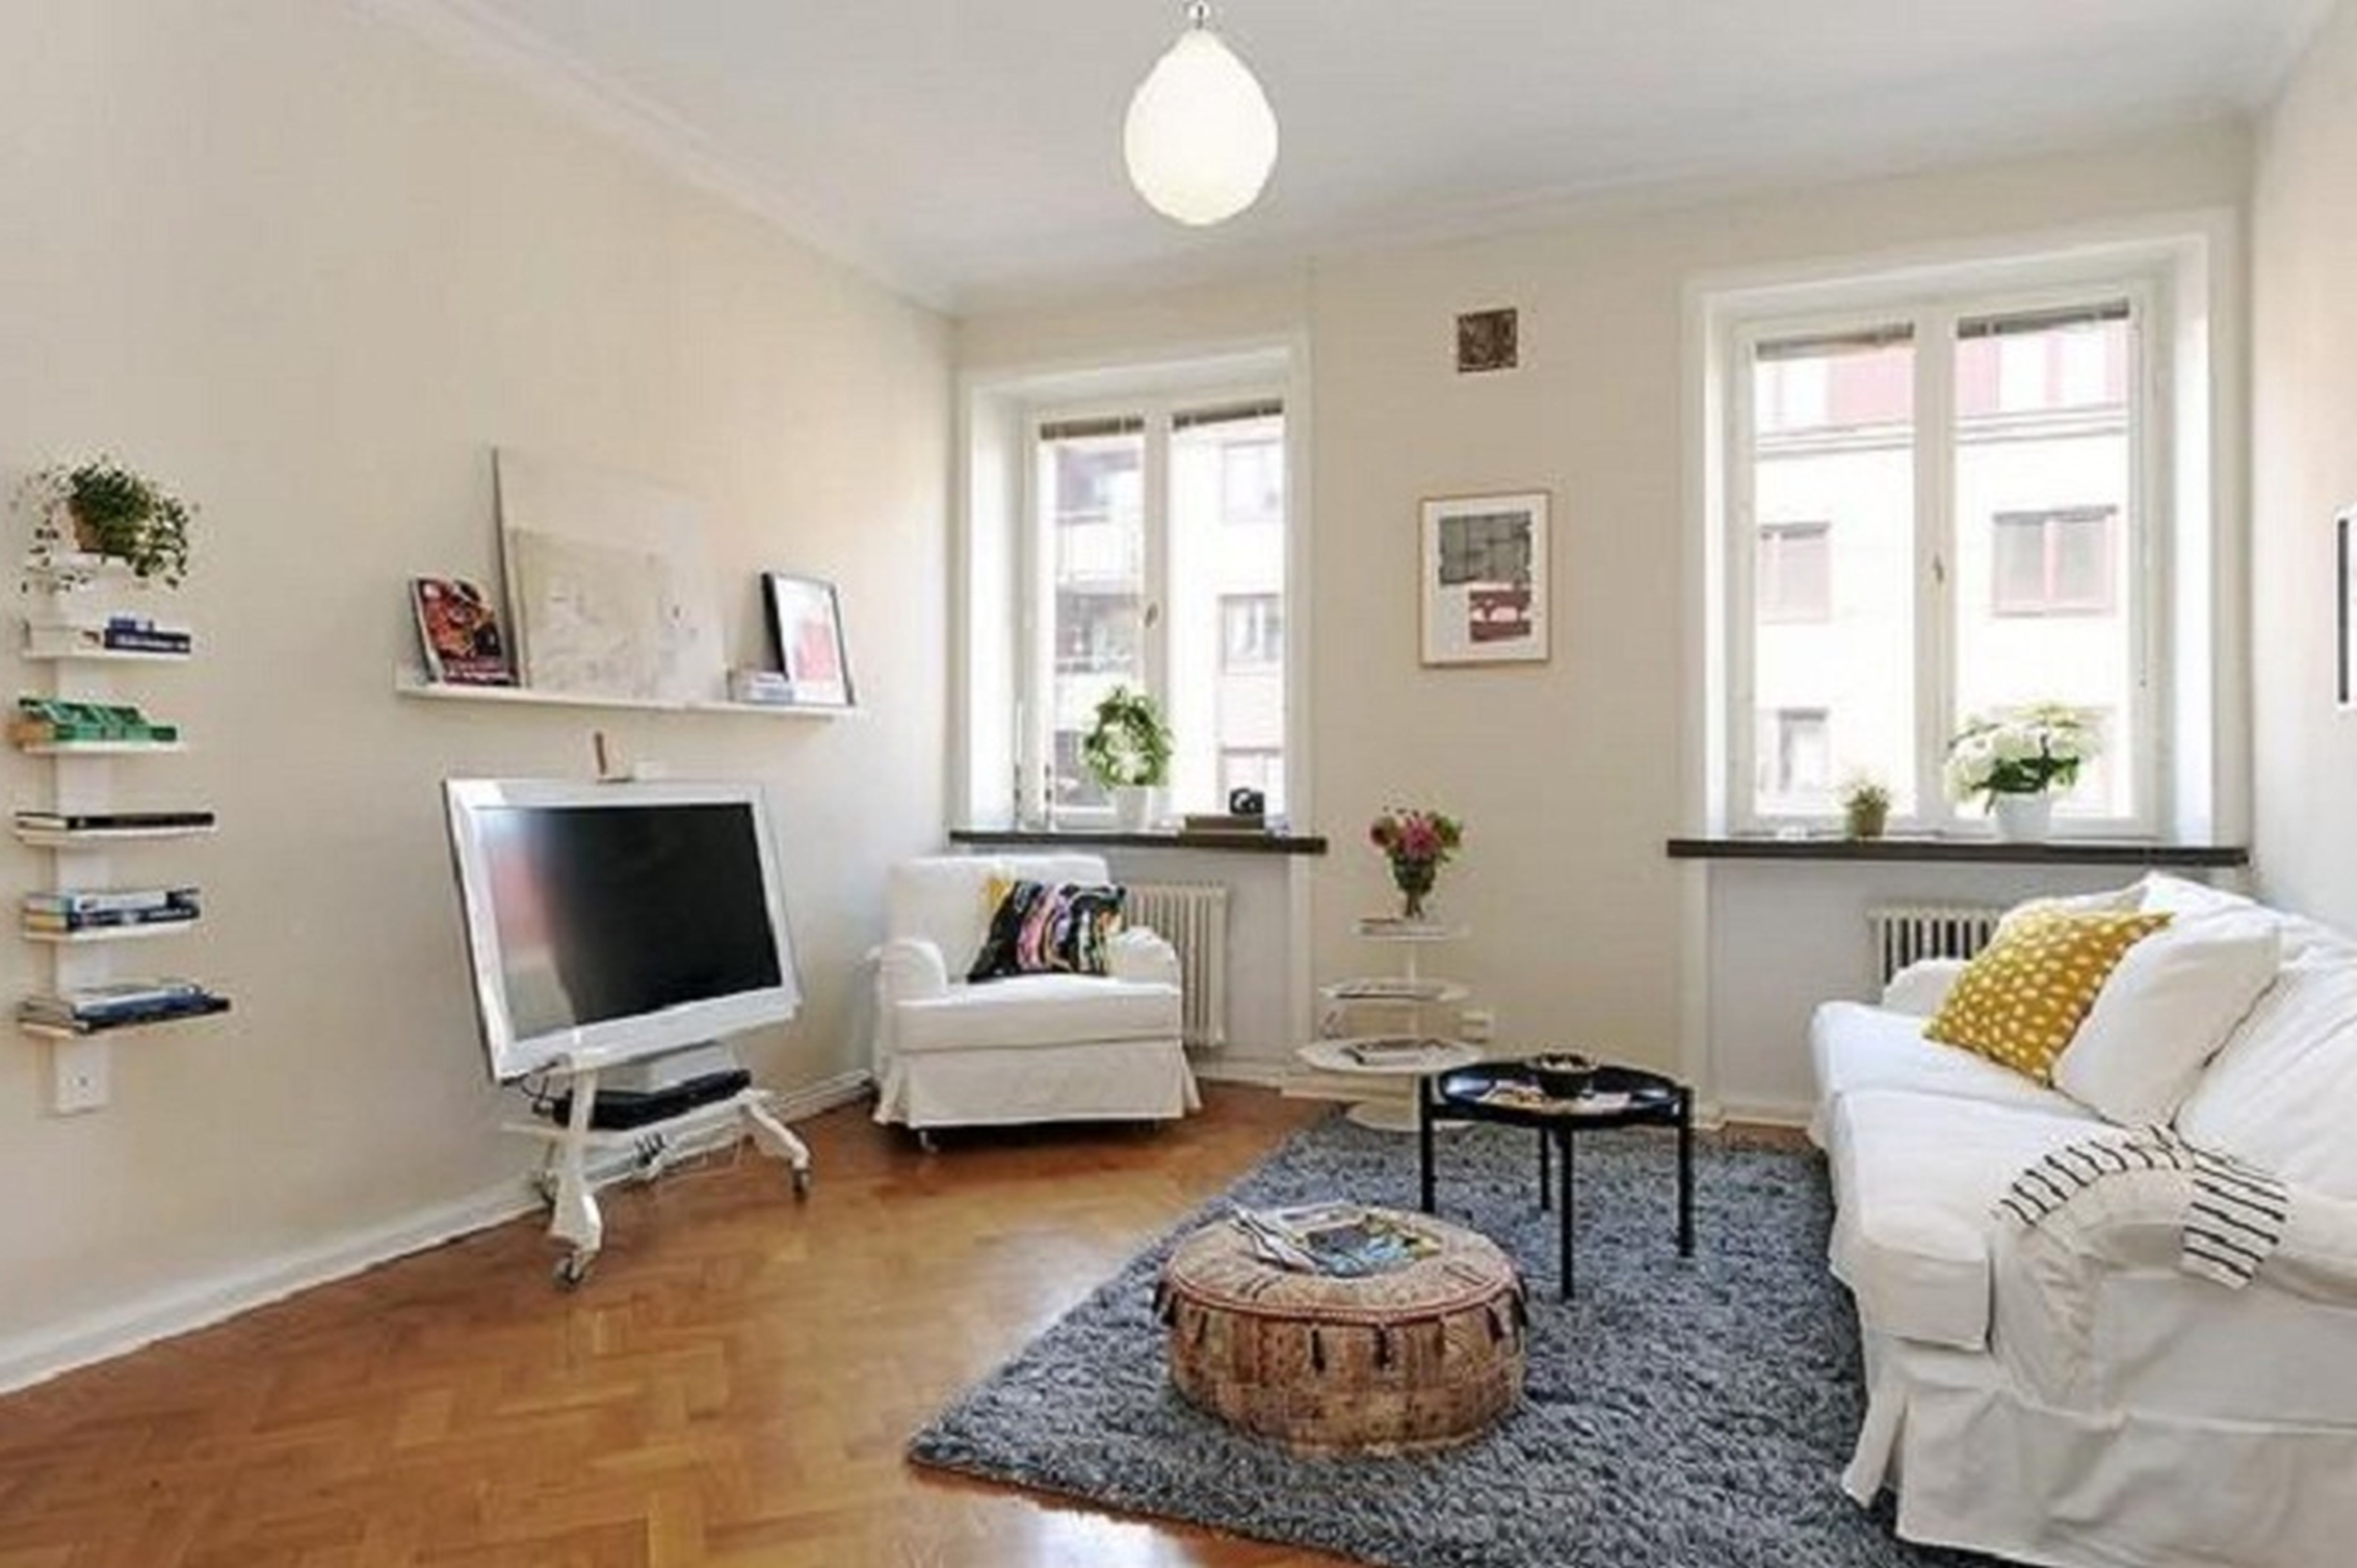 Apartment With Small Living Room Design - HomesFeed on Awesome Apartment Budget Apartment Living Room Ideas  id=96912